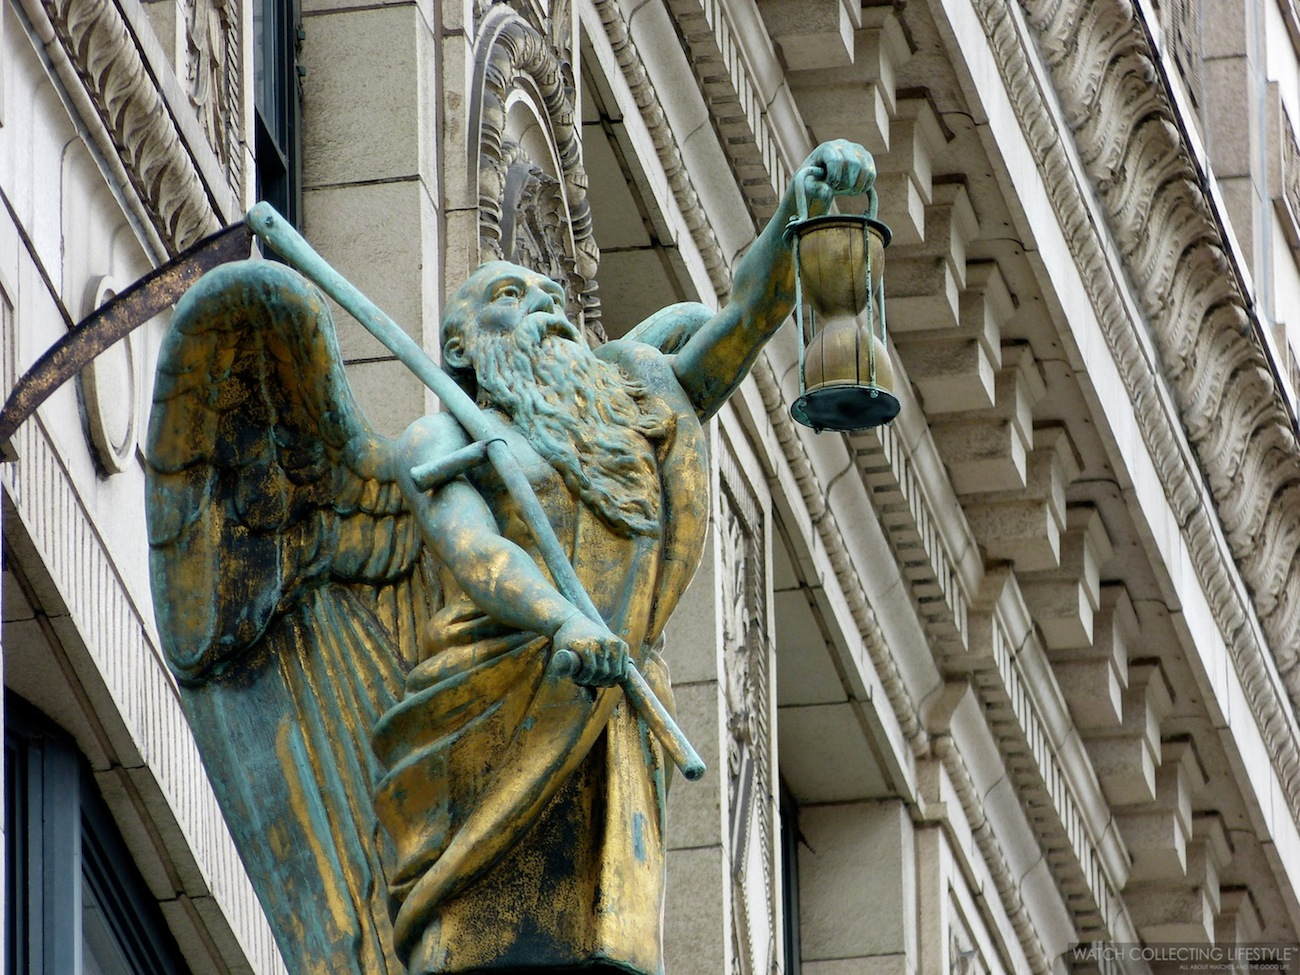 Experience: Chicago's Father Time Clock at The Jewelers